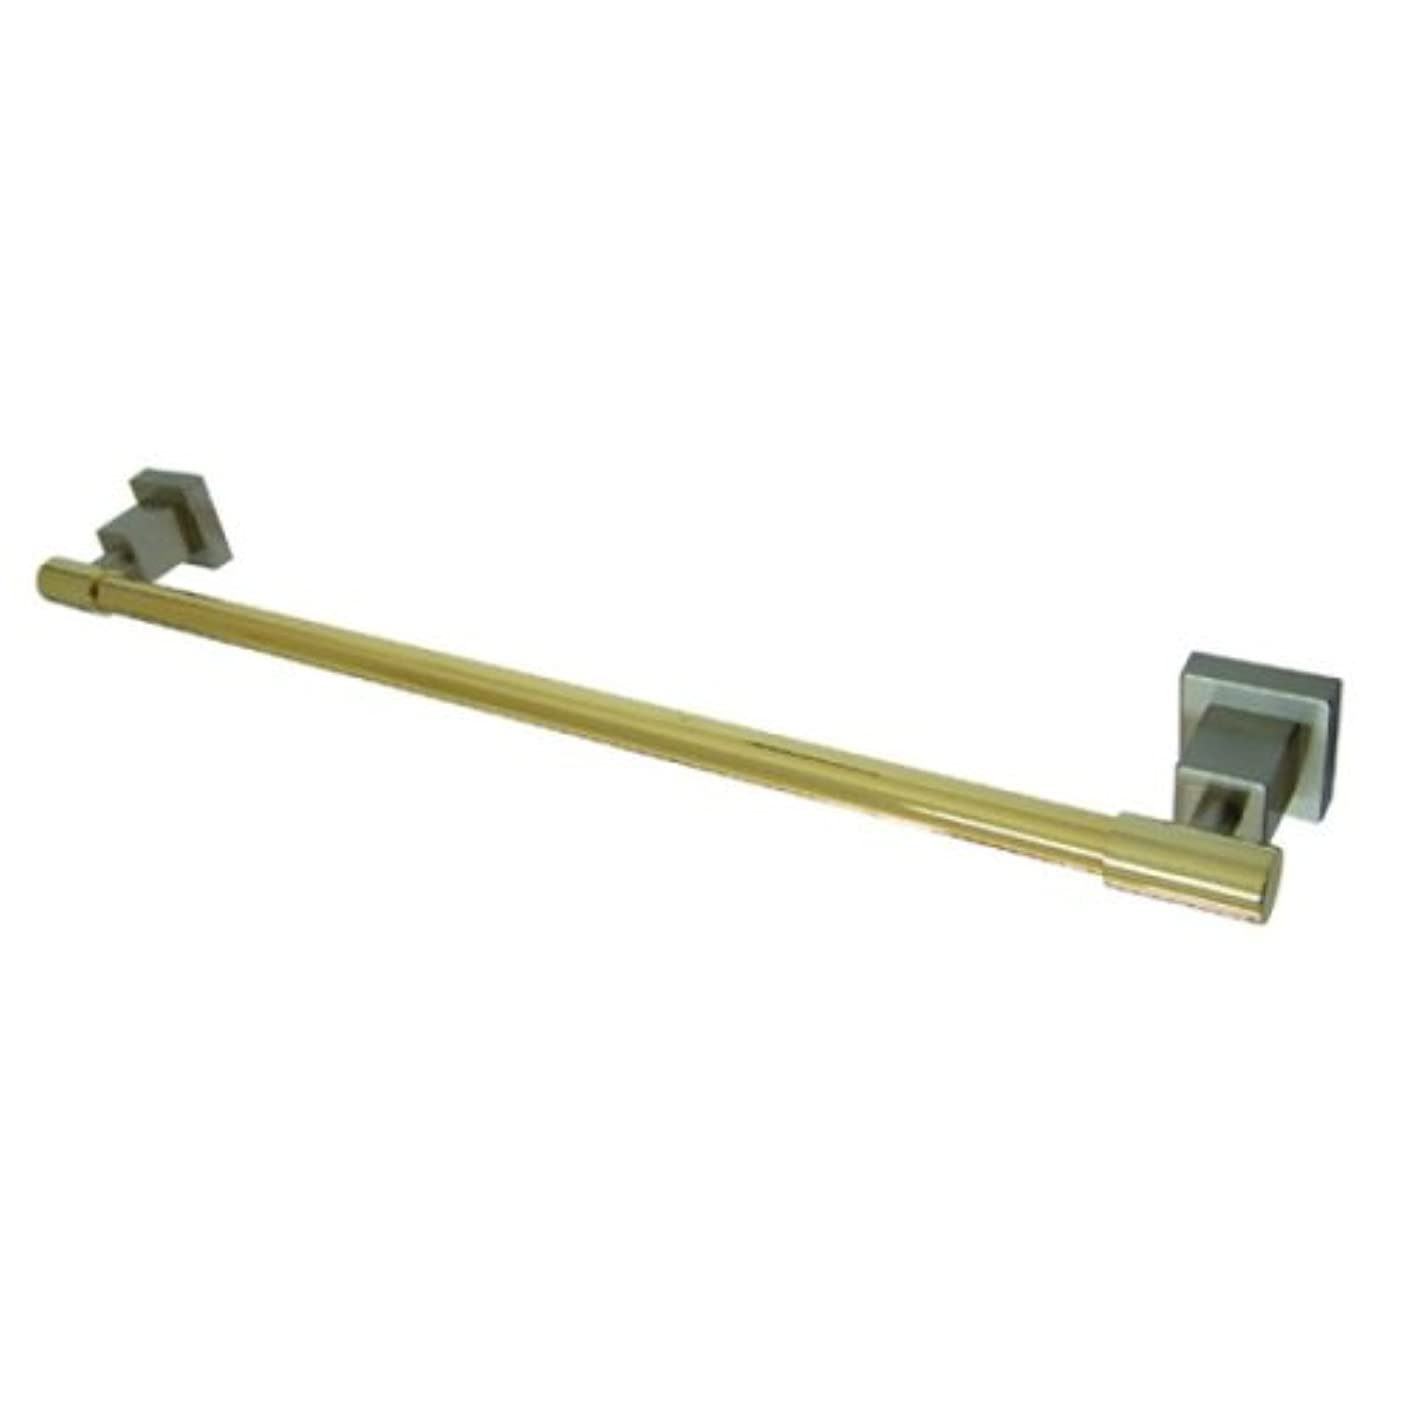 Kingston Brass BAH8641SNPB Claremont 24-Inch Towel Bar, Satin Nickel and Polished Brass